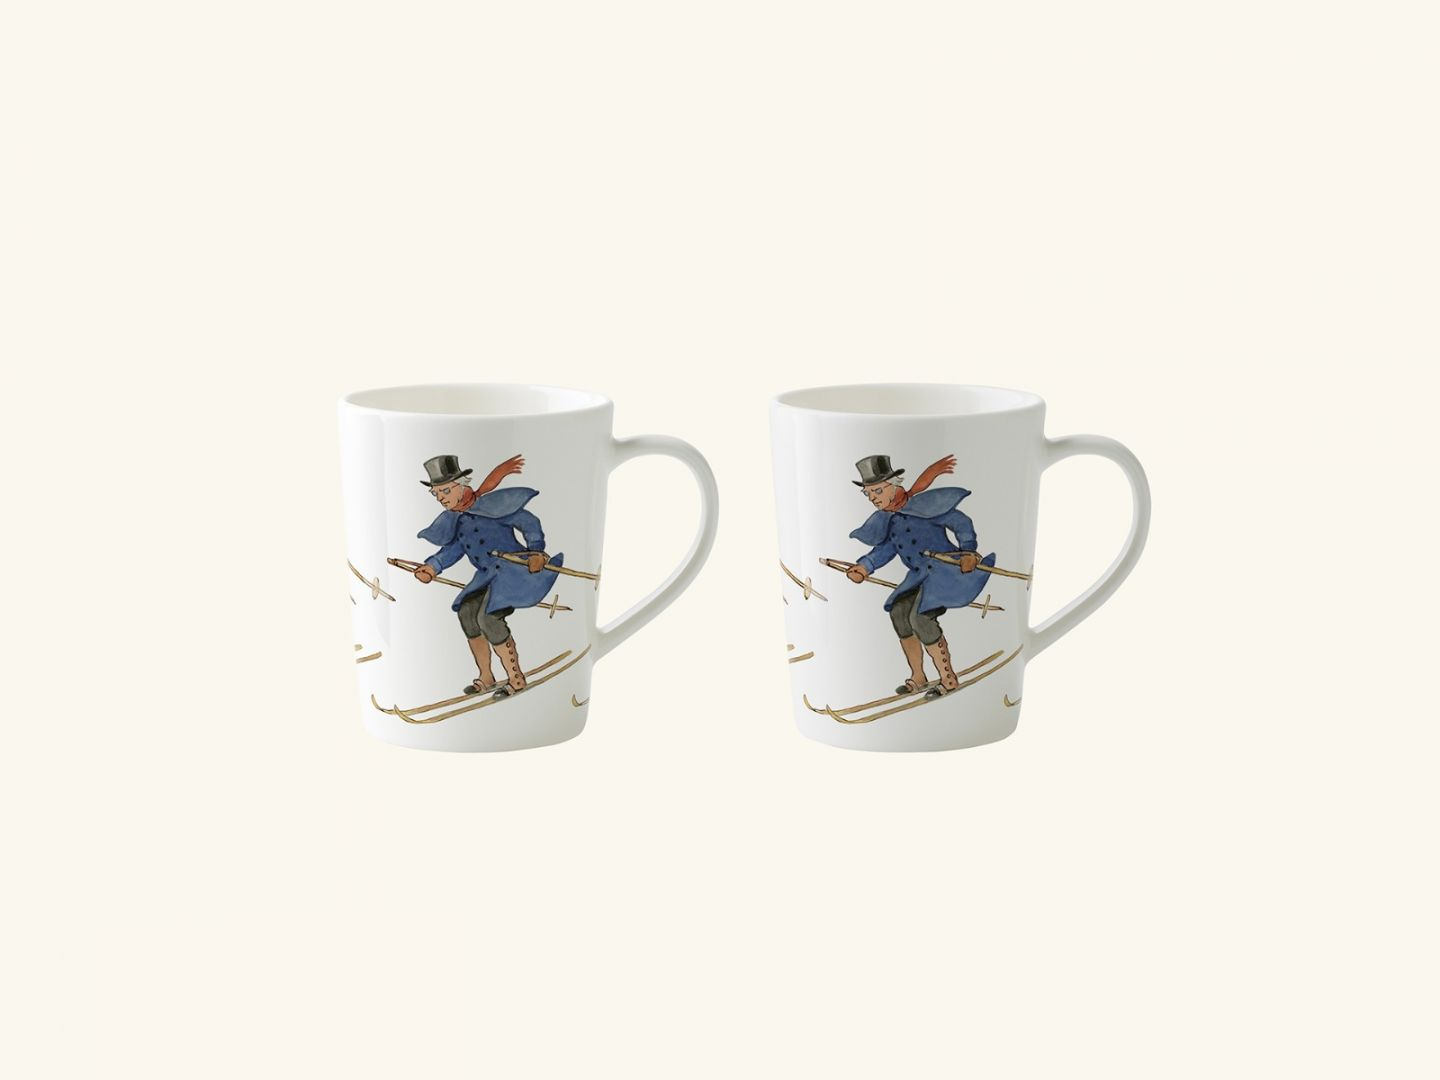 Mulled wine mugs, Uncle Blue is skiing